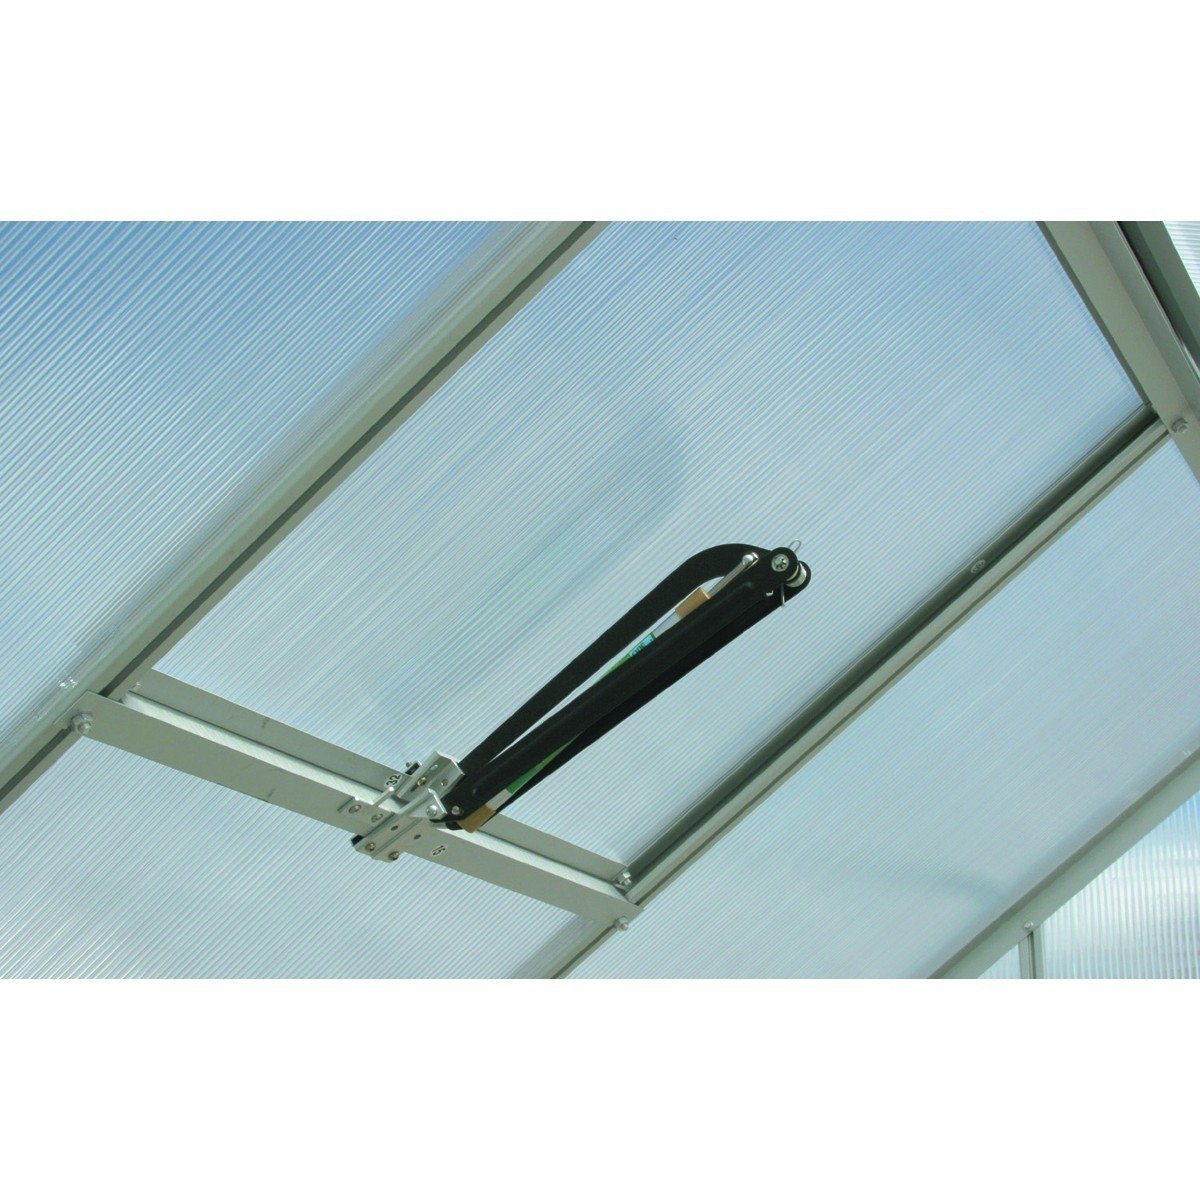 Set of 2 Roof Window/Vent Opener for Greenhouses (NO TEMPERATURE CONTROL)